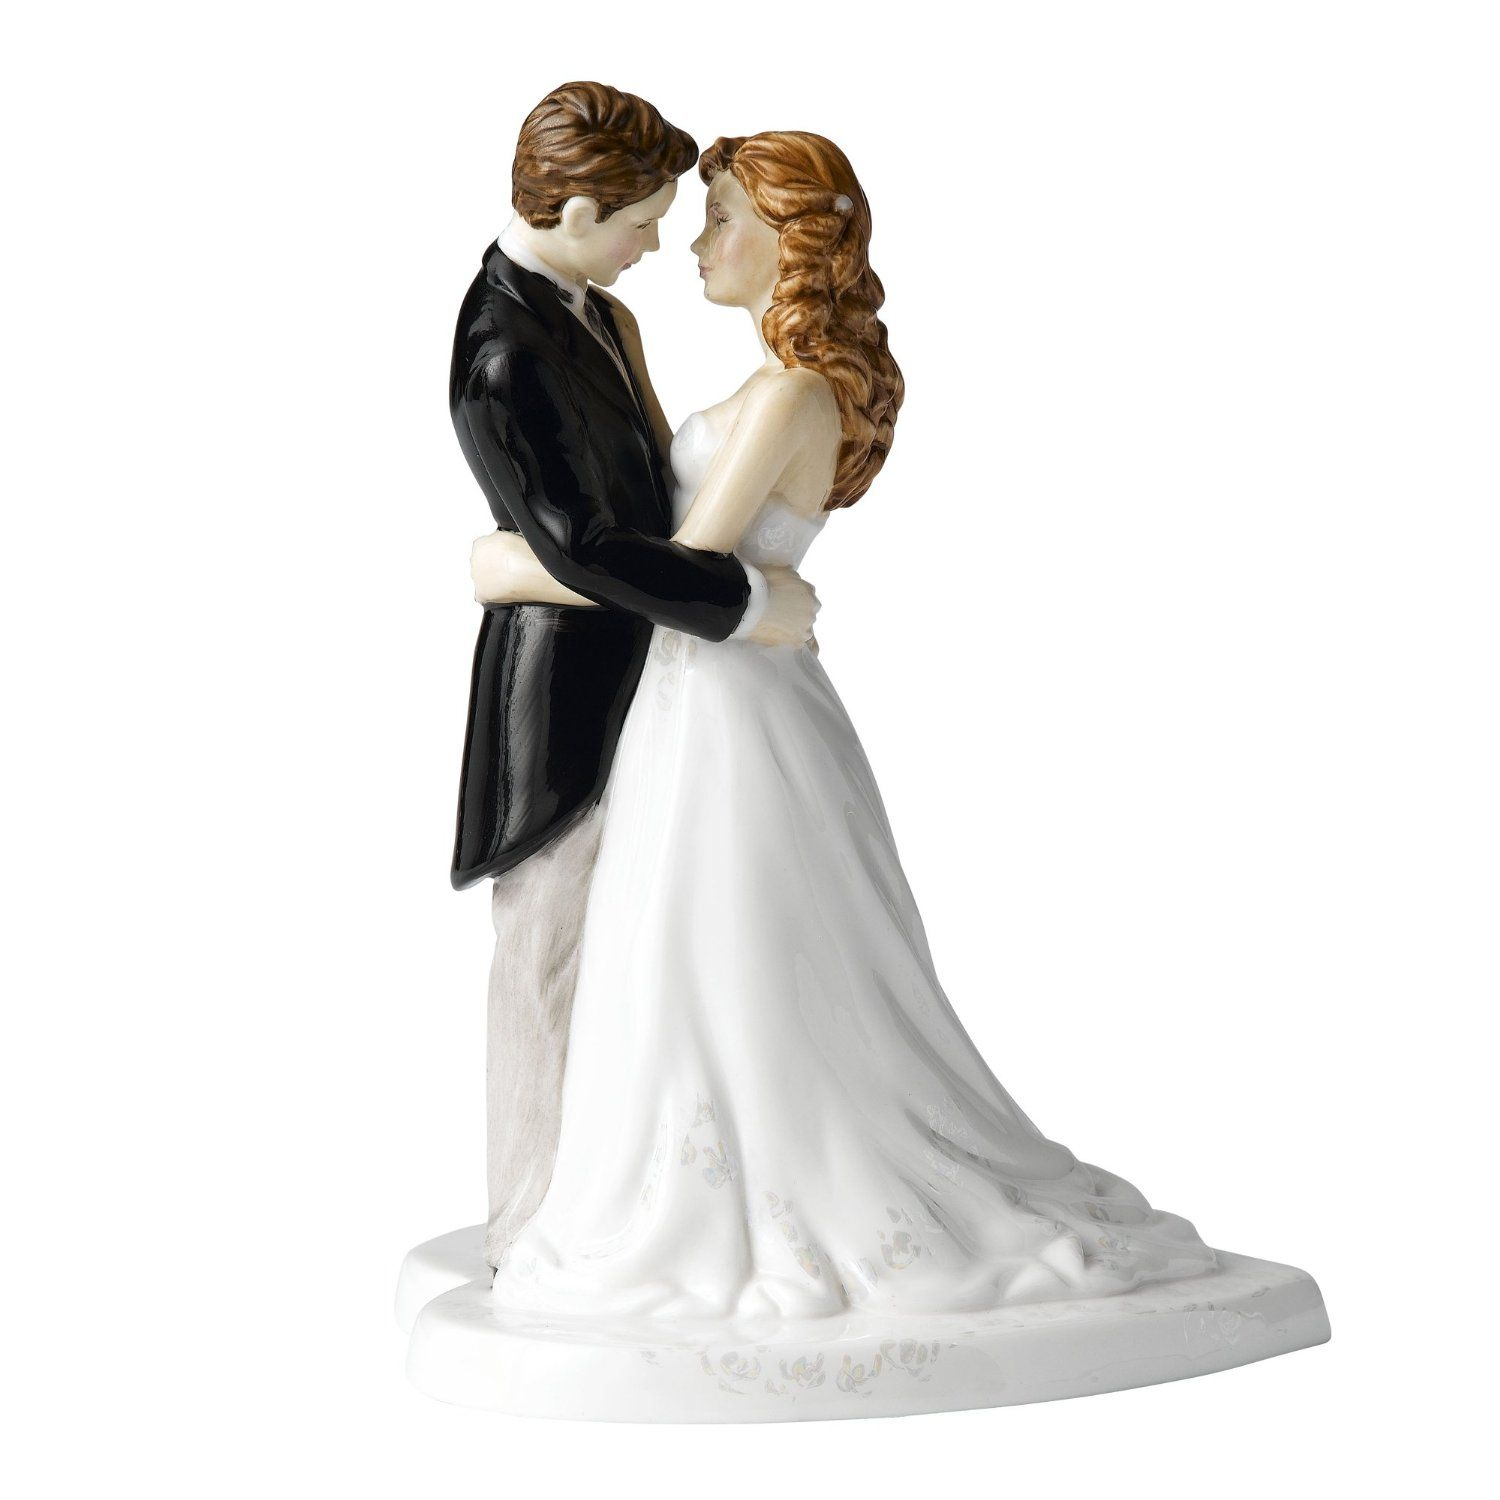 Amazon Royal Doulton Our Wedding Day Cake Topper Decorative Cake Toppers